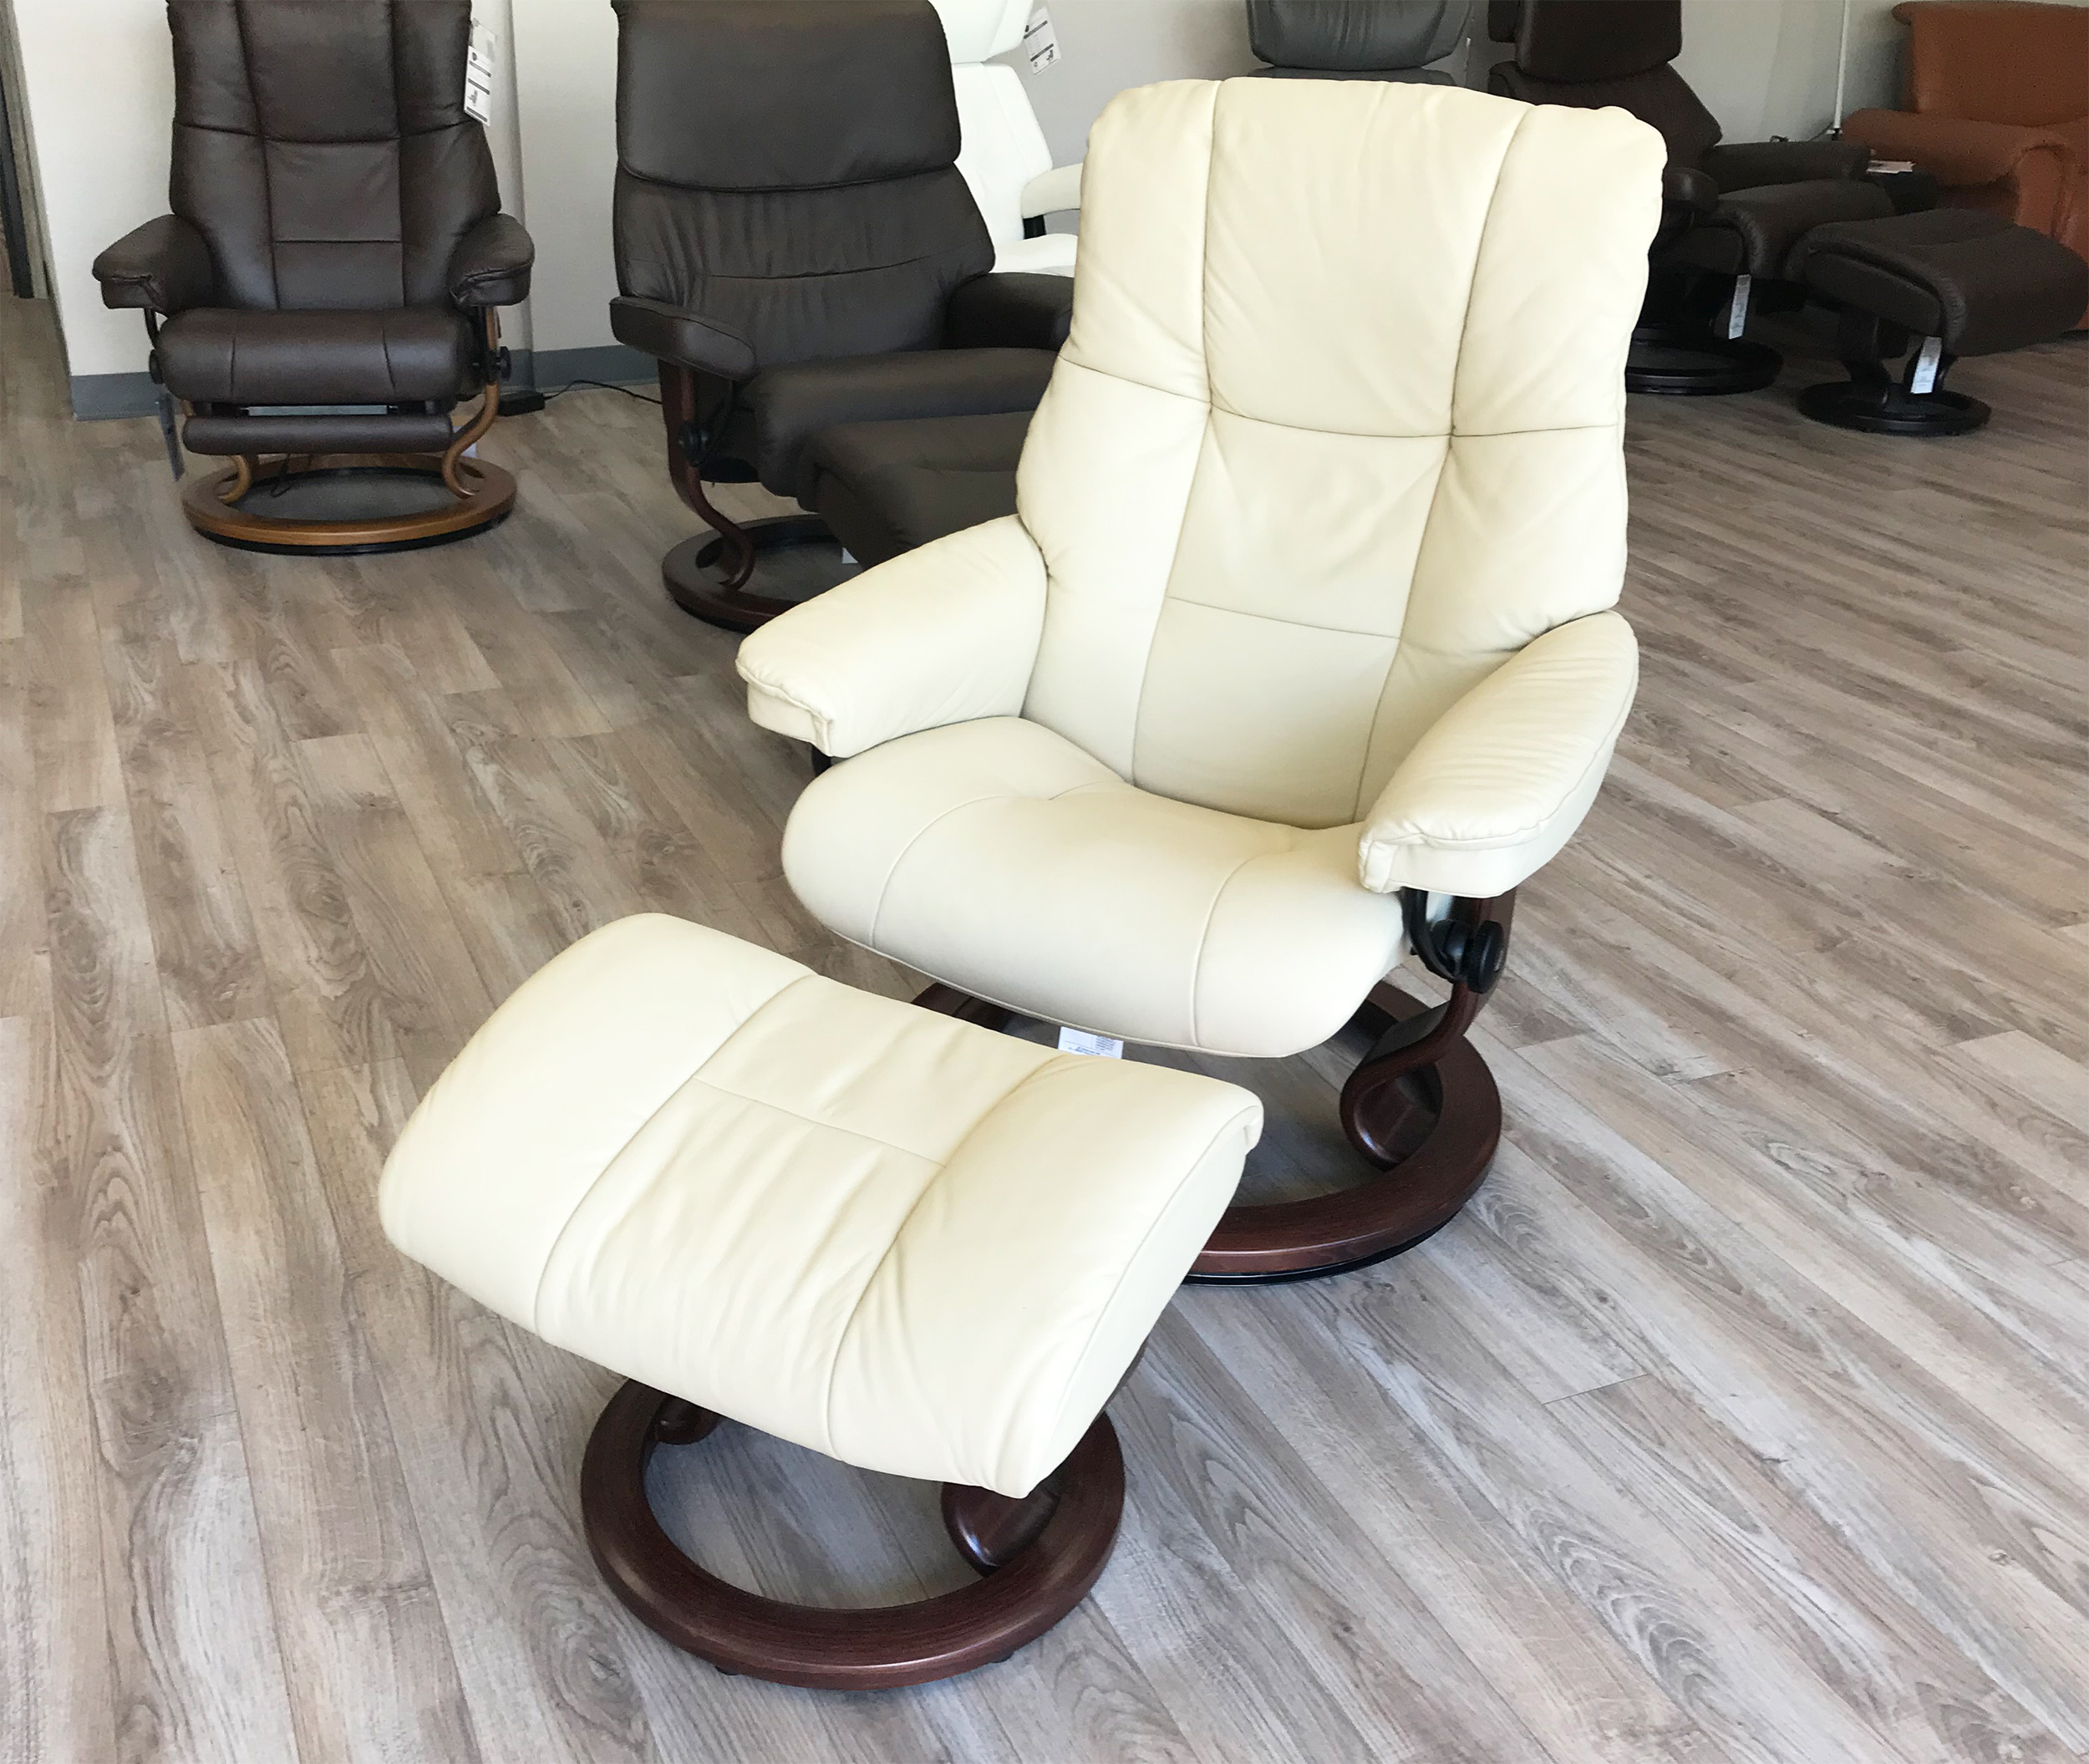 Leather Chairs With Ottoman Stressless Chelsea Small Mayfair Paloma Kitt Leather Recliner Chair And Ottoman By Ekornes